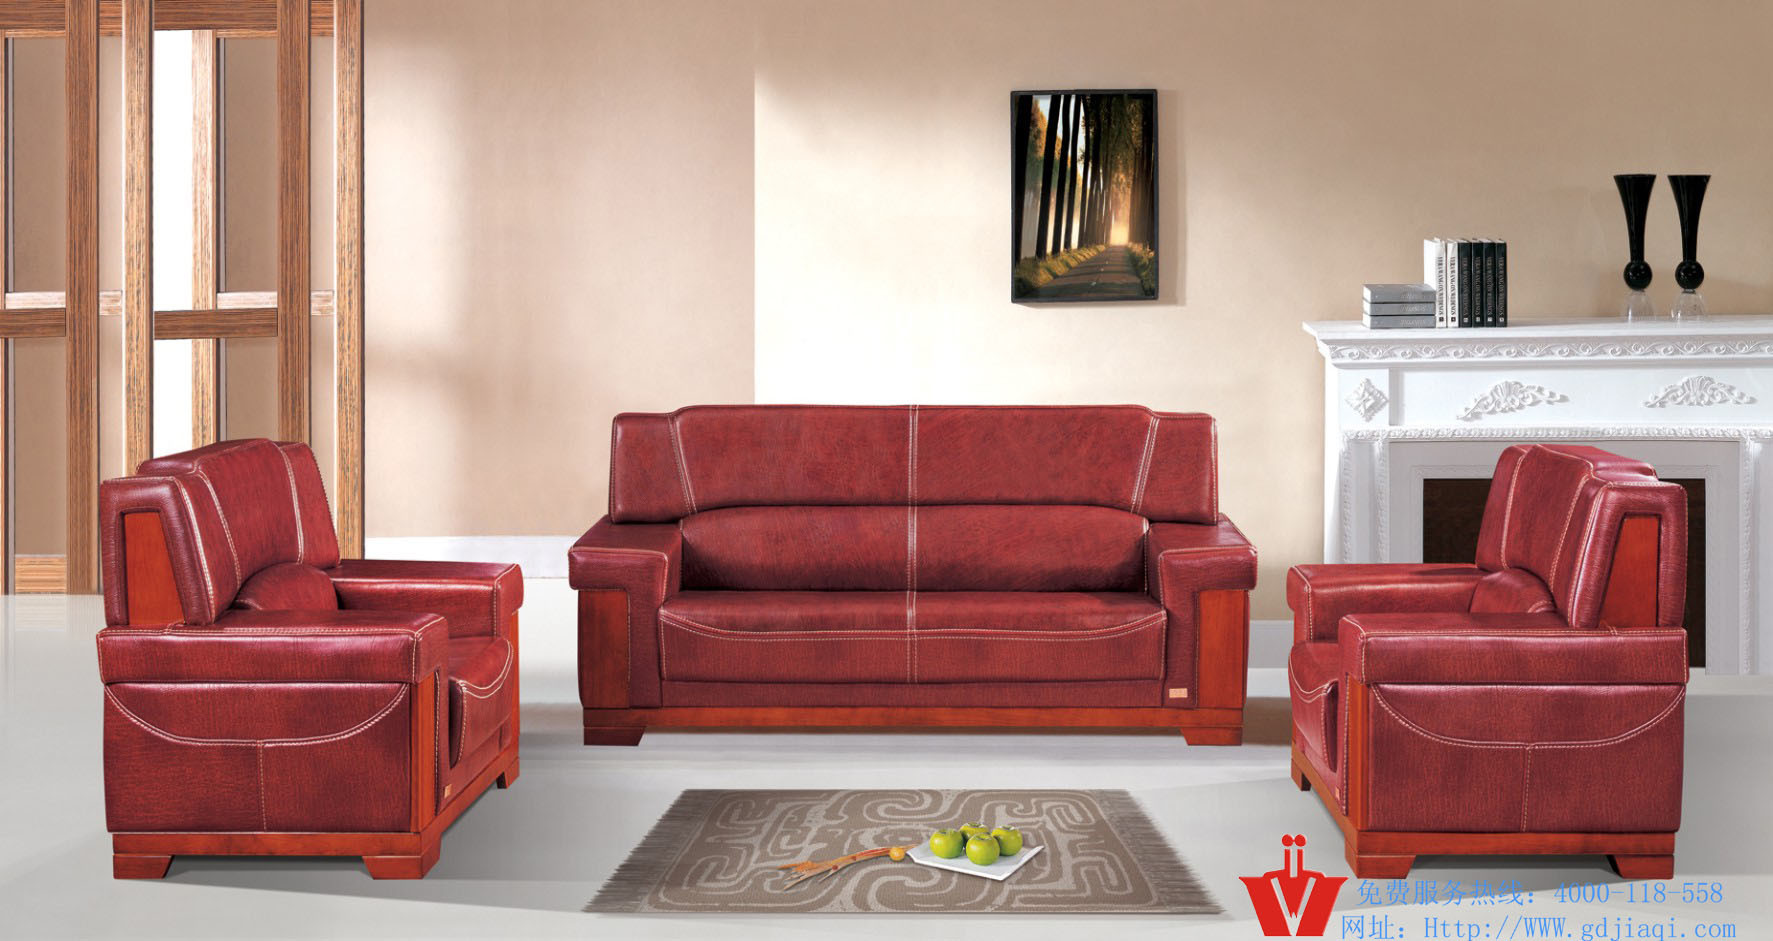 sofa europ en de luxe rouge chaud de cuir de bureau wp5 3007 sofa europ en de luxe rouge. Black Bedroom Furniture Sets. Home Design Ideas